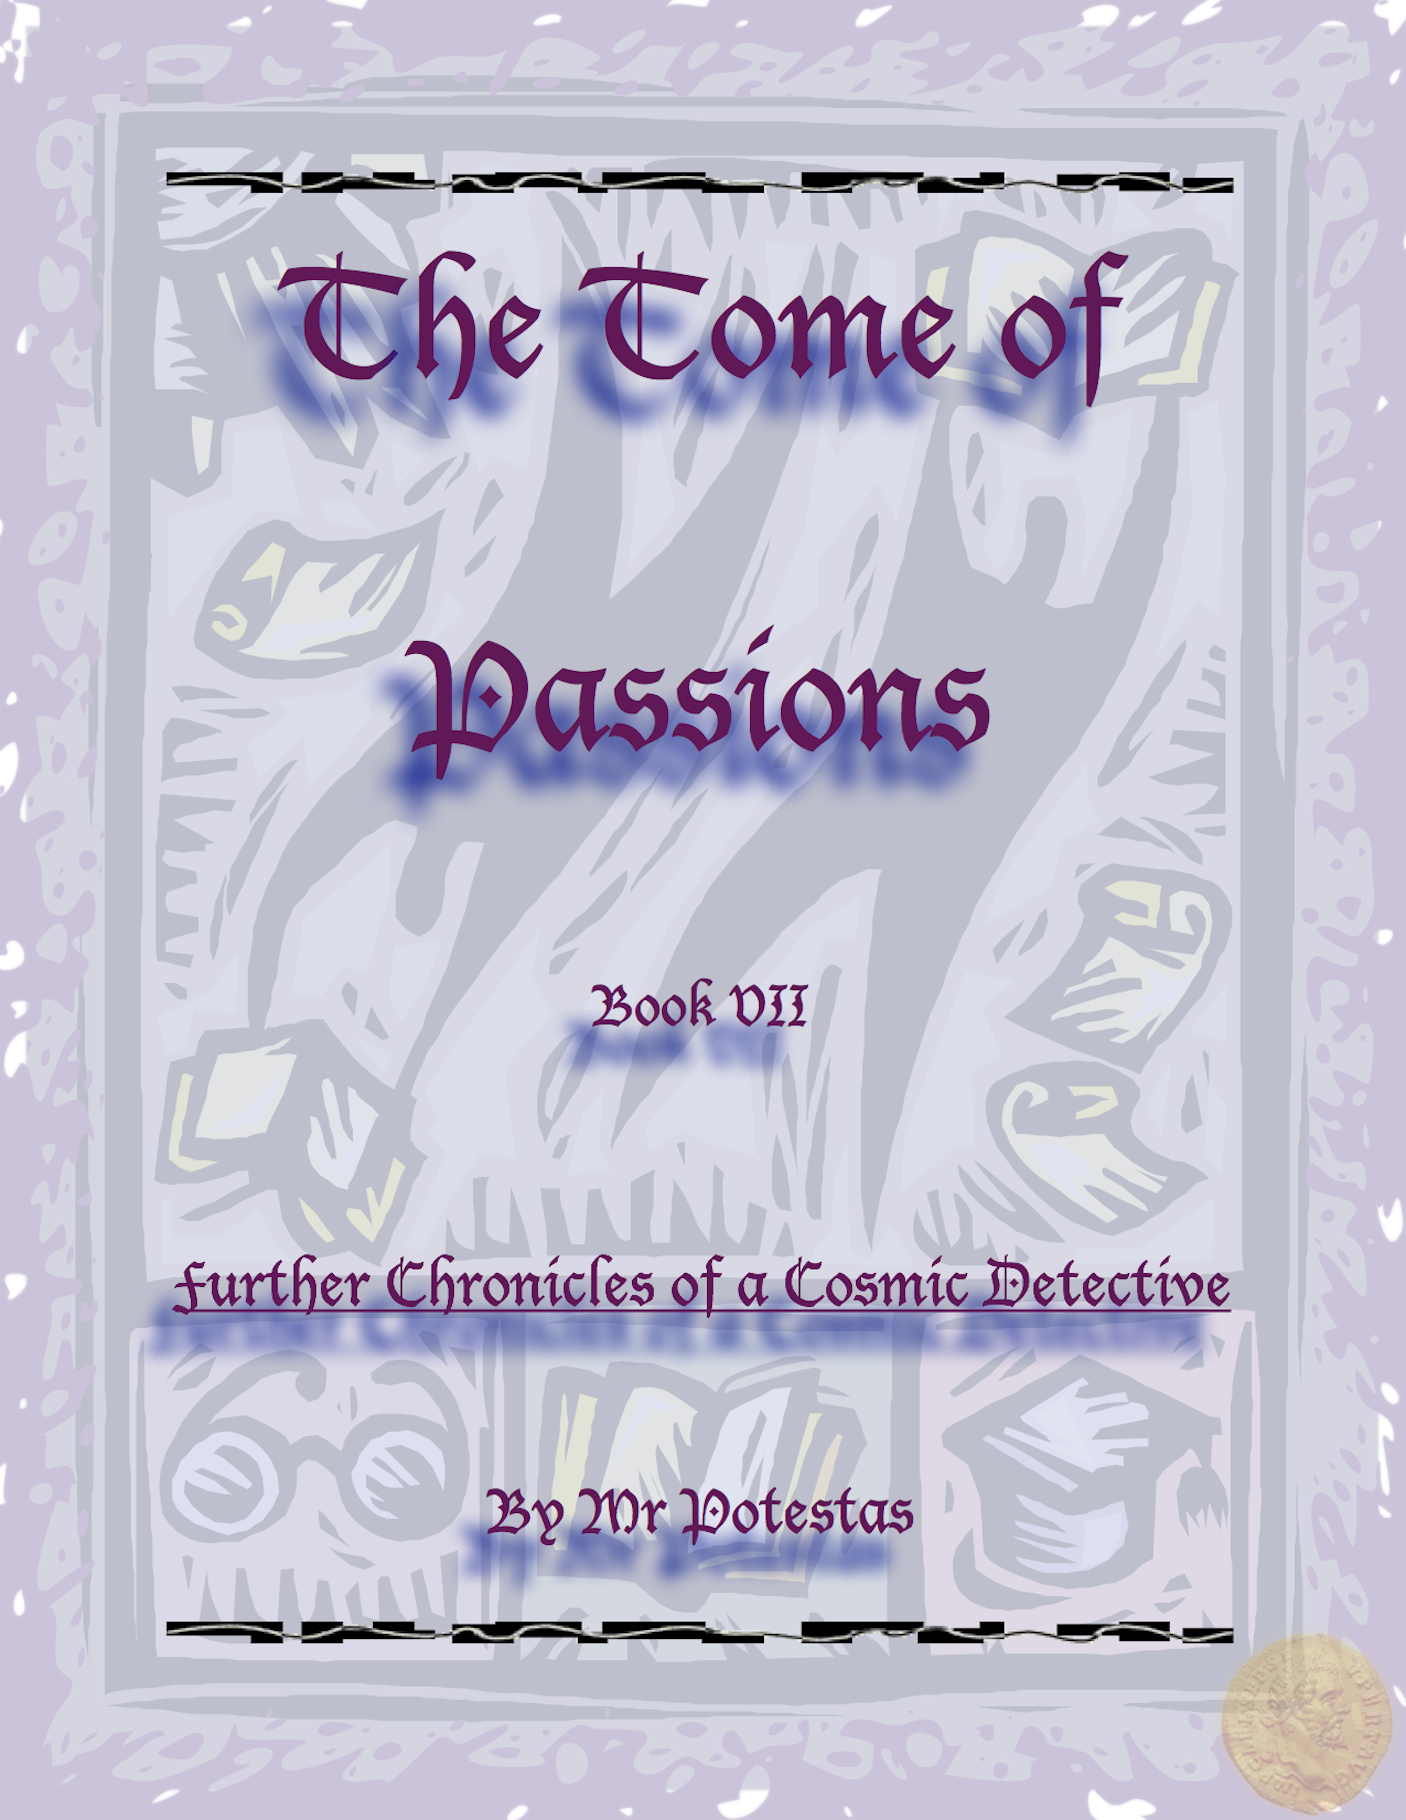 The Tome of Passions: Book VII -- Further Chronicles of a Cosmic Detective